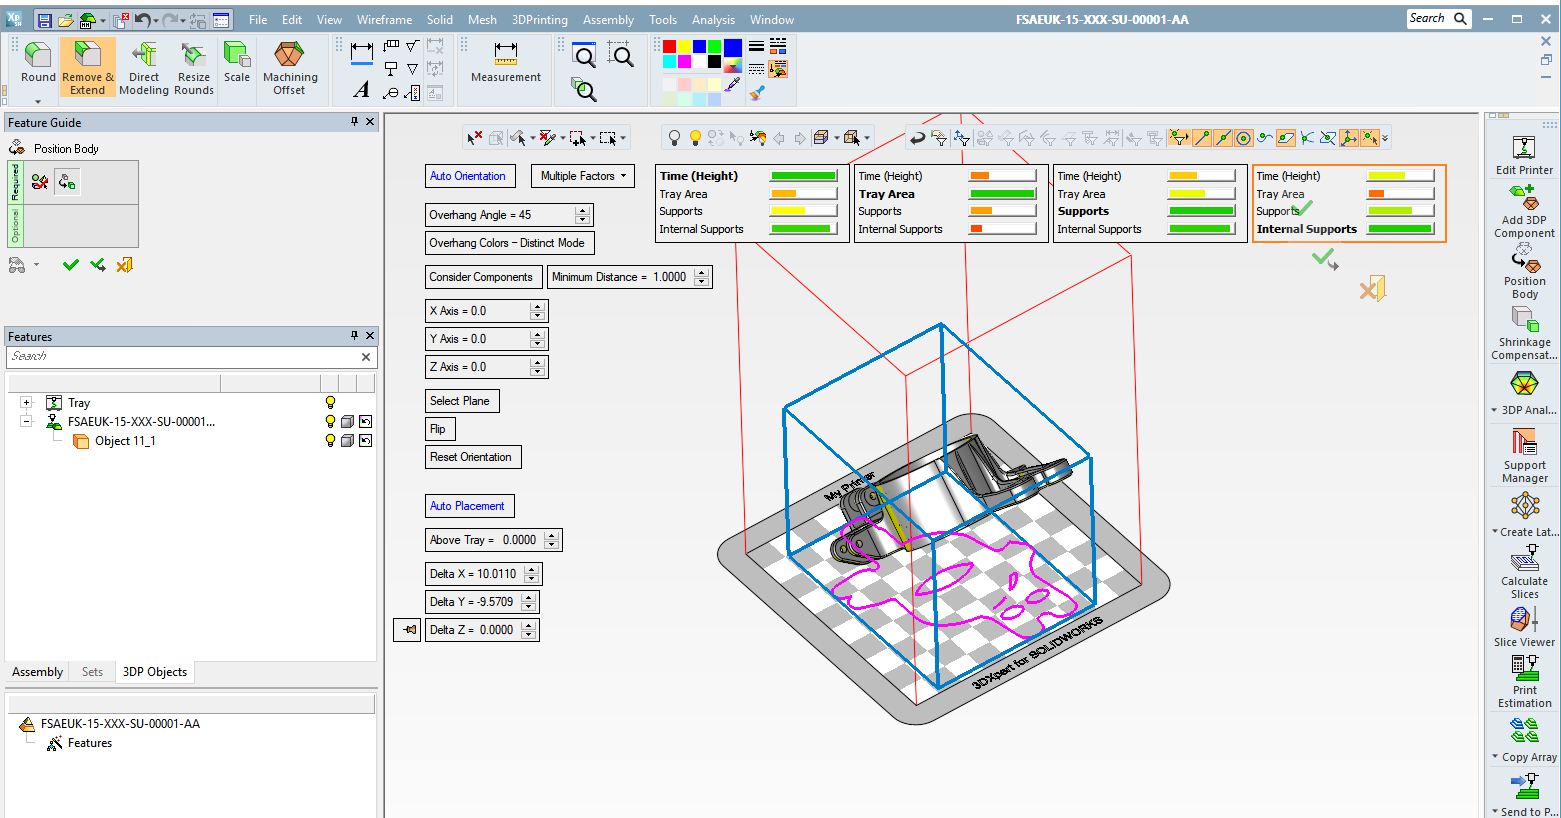 3DXpert for SOLIDWORKS: get your design ready for additive